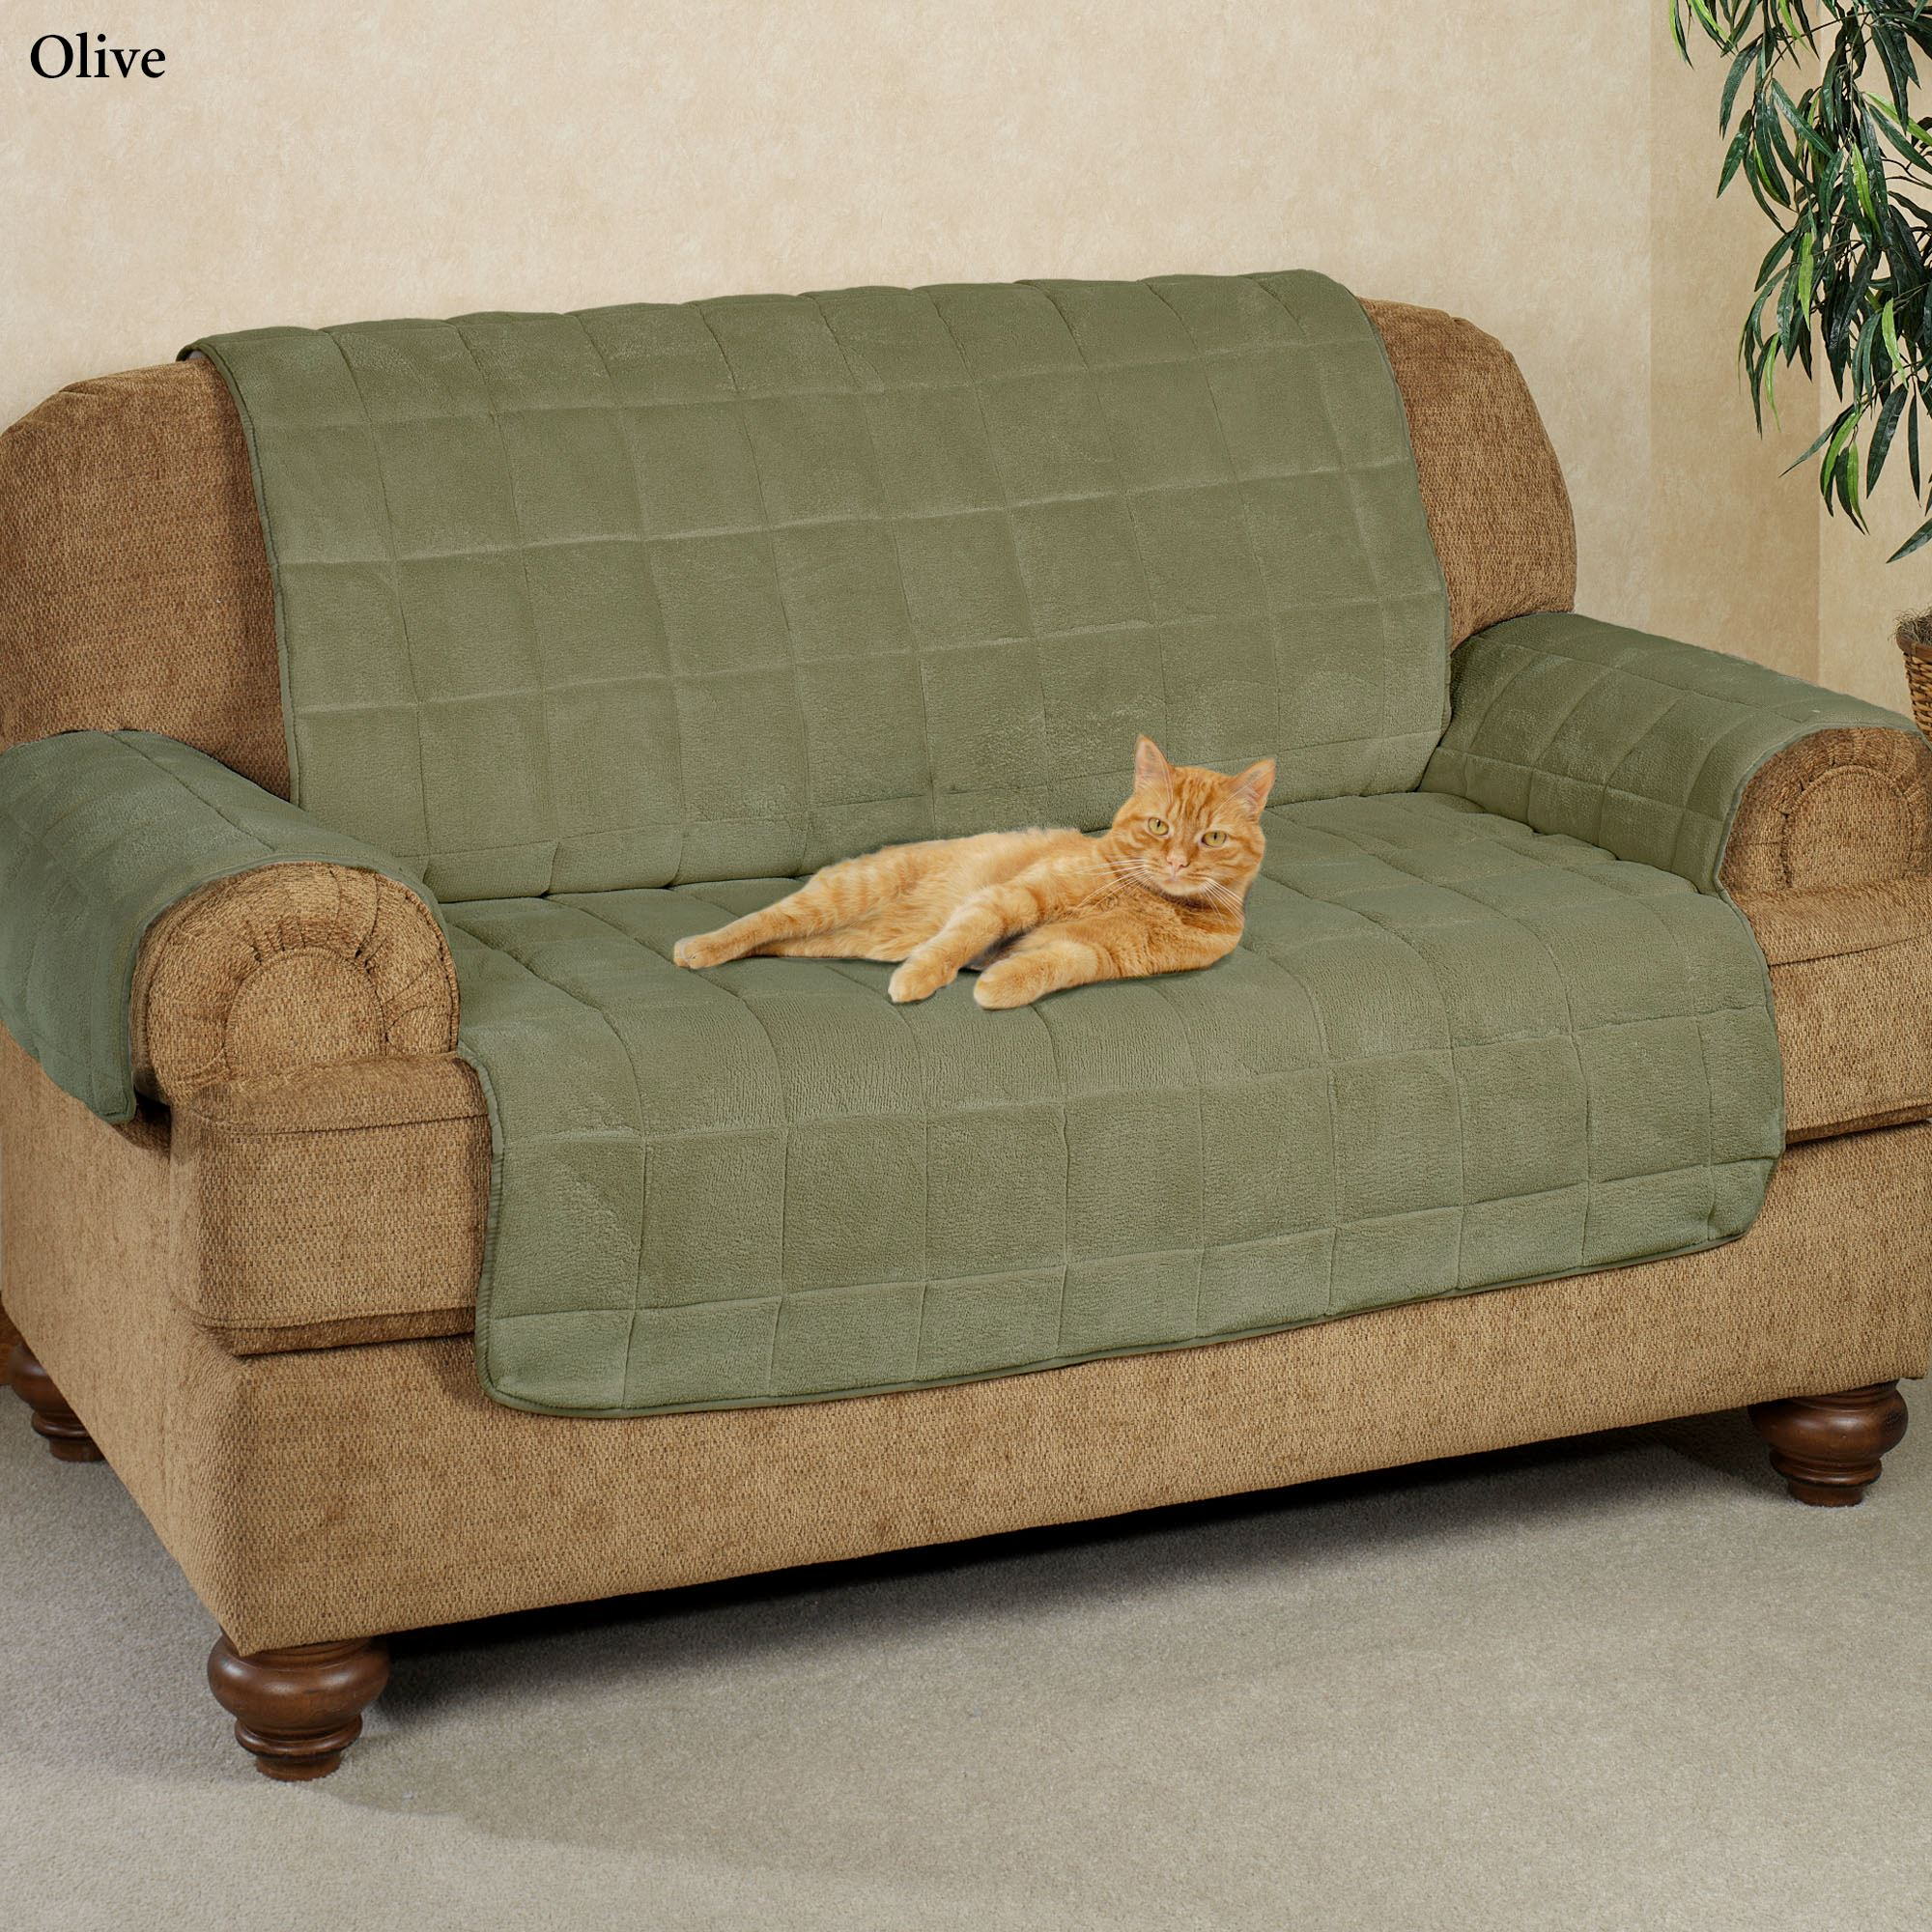 long sofa pet cover home theater philippines microplush furniture covers with longer back flap